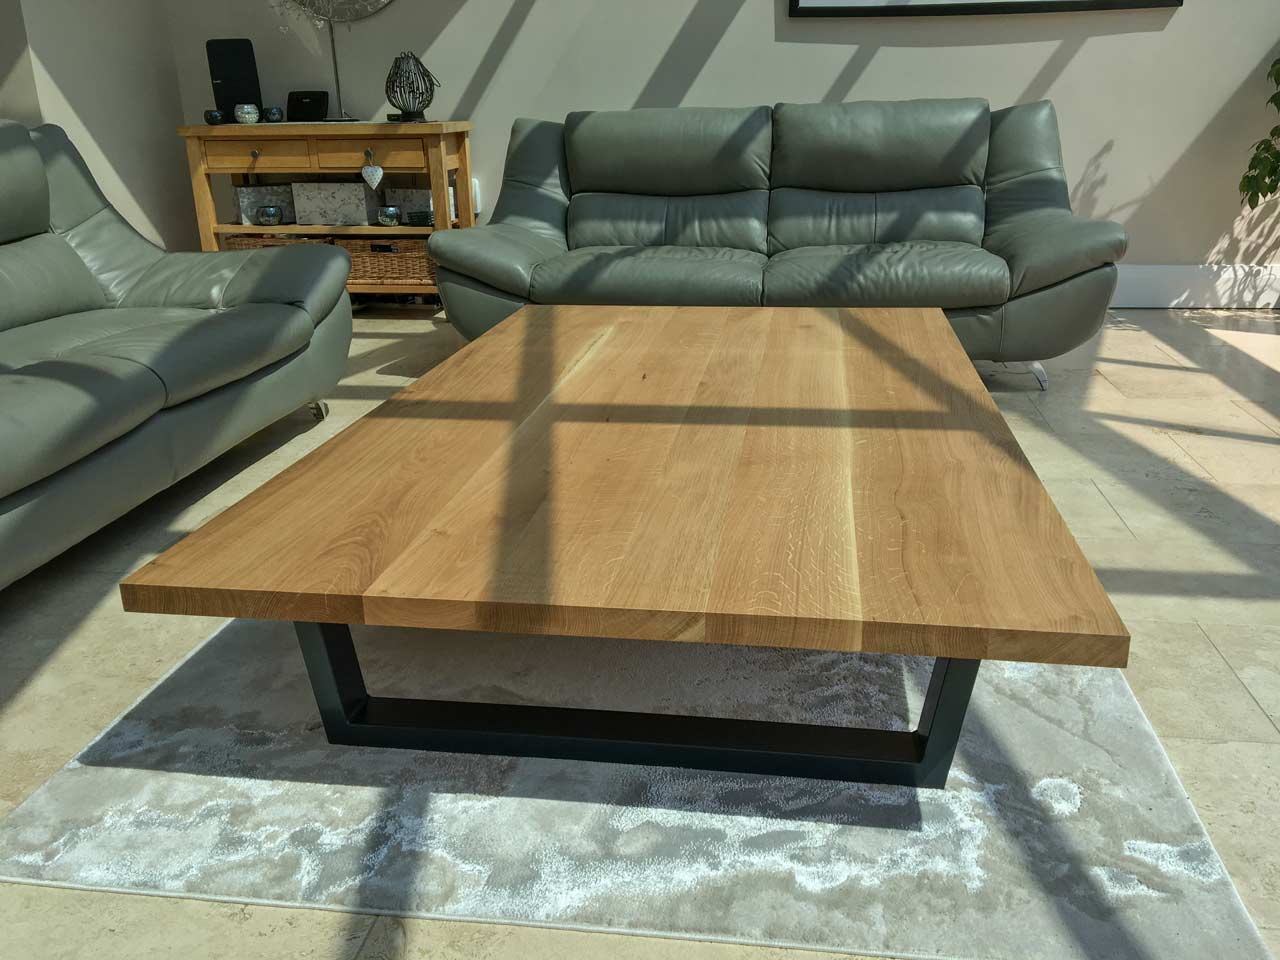 abacus-tables-project-922-pic-3